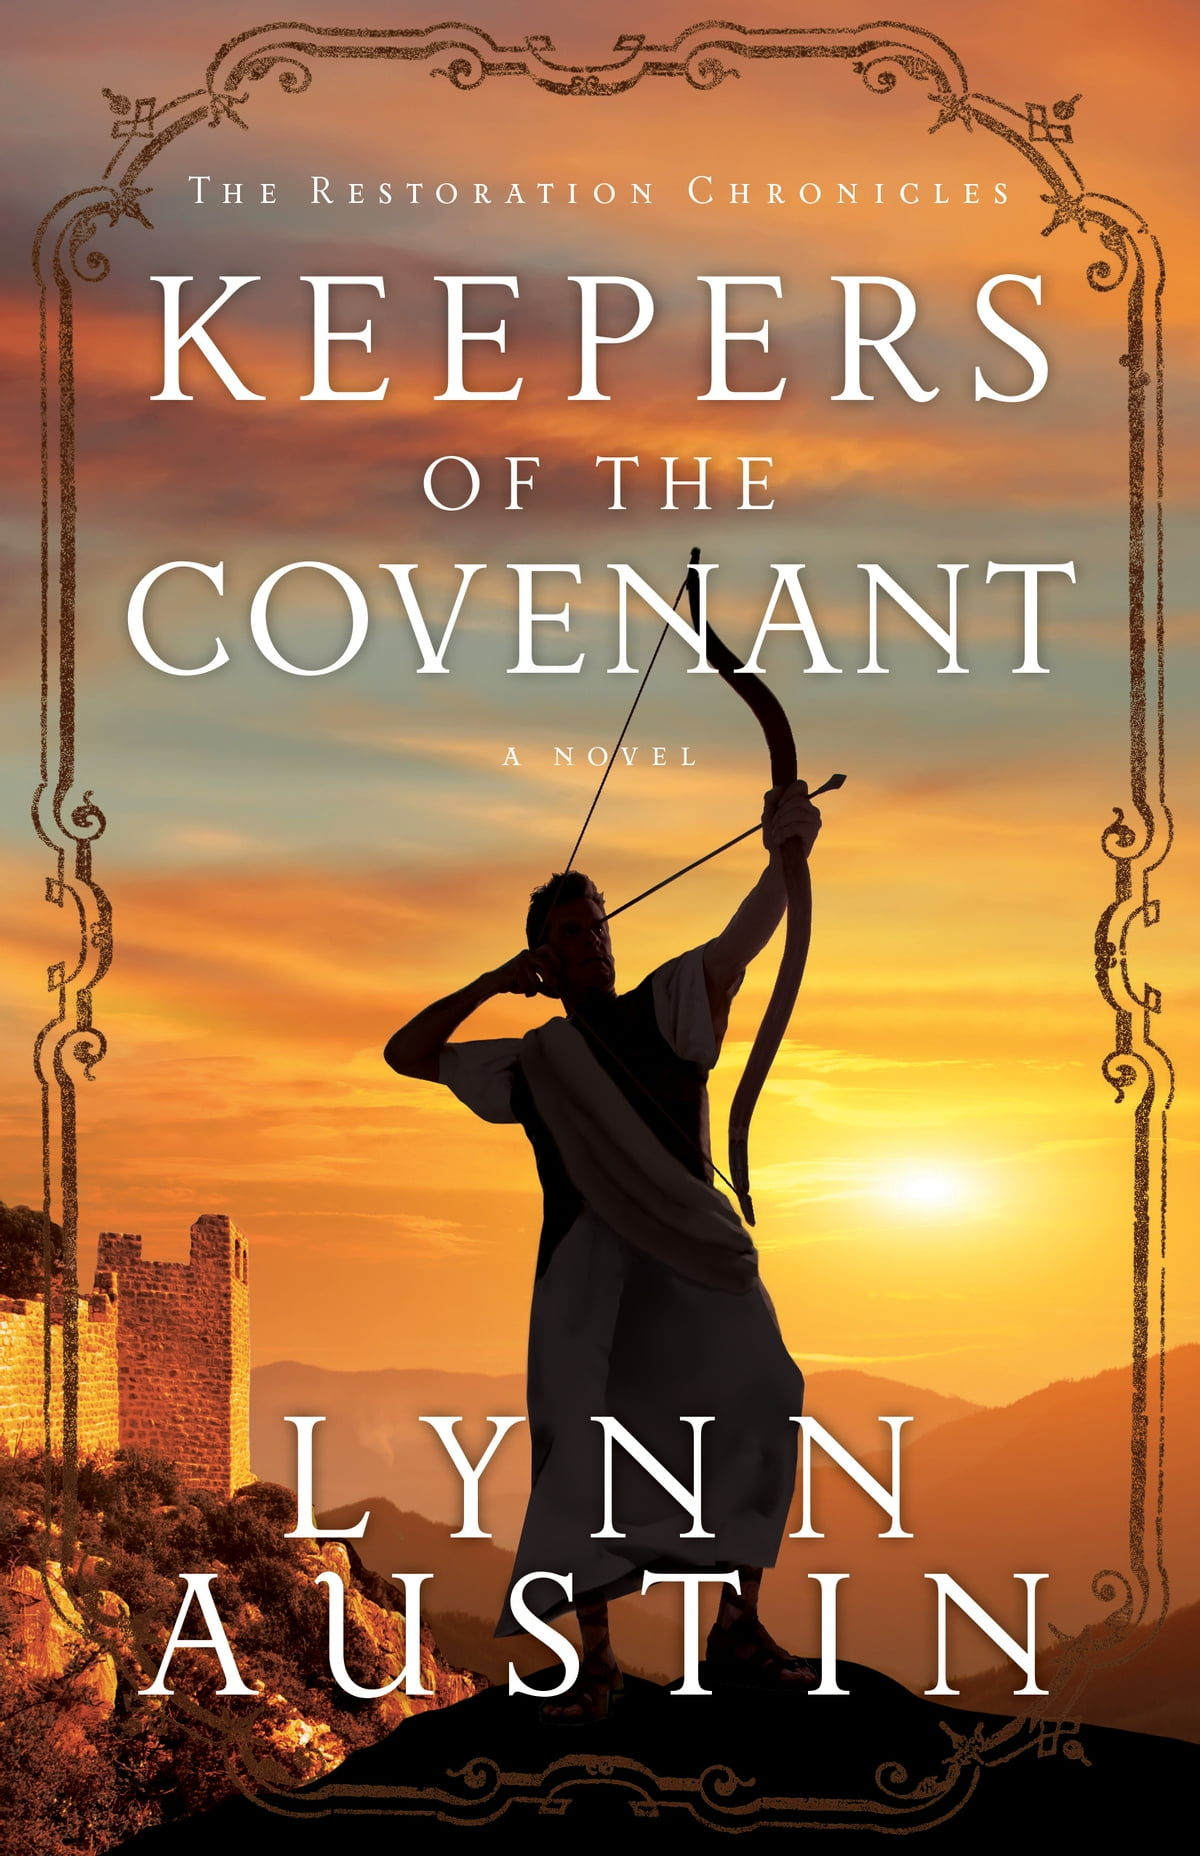 Keepers of the covenant the restoration chronicles book 2 ebook keepers of the covenant the restoration chronicles book 2 ebook by lynn austin 9781441264794 rakuten kobo fandeluxe PDF